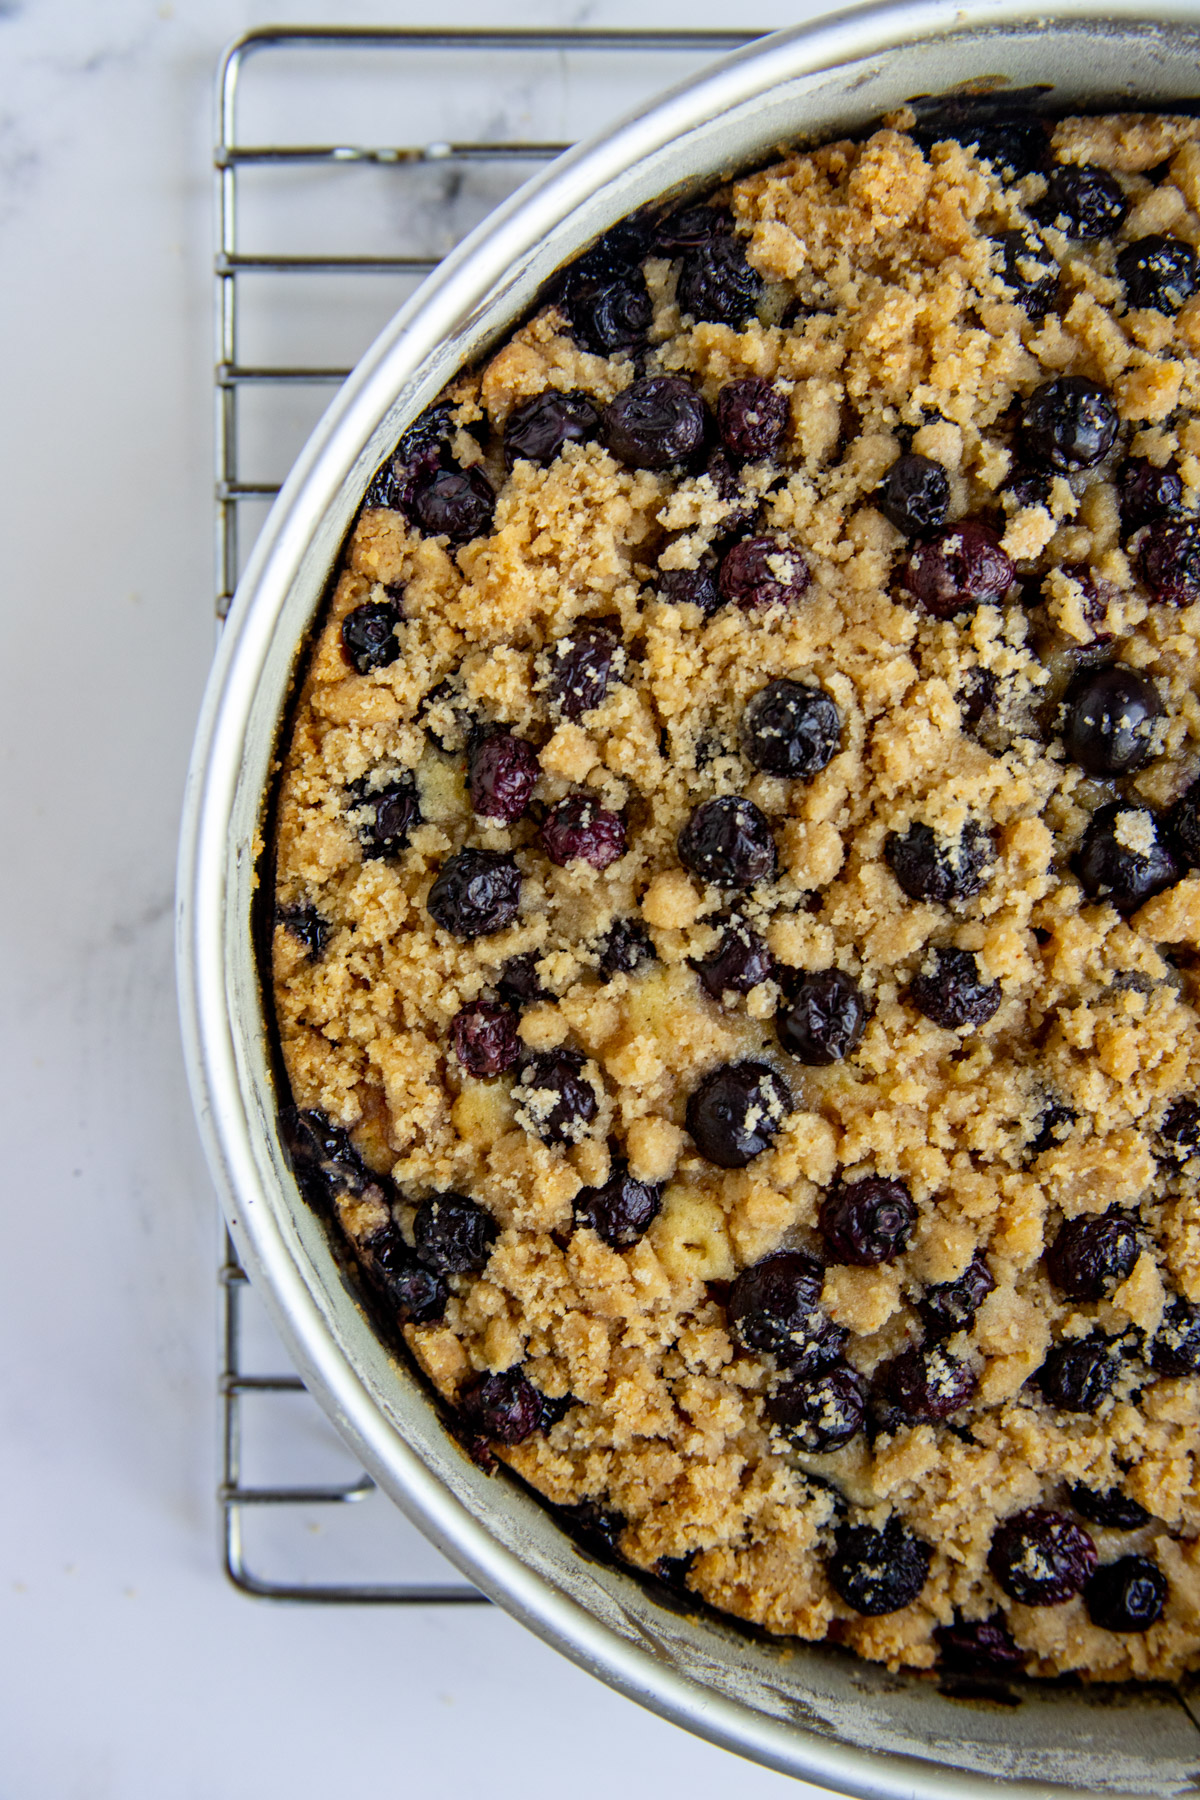 Baked Blueberry Coffee Cake on cooling rack